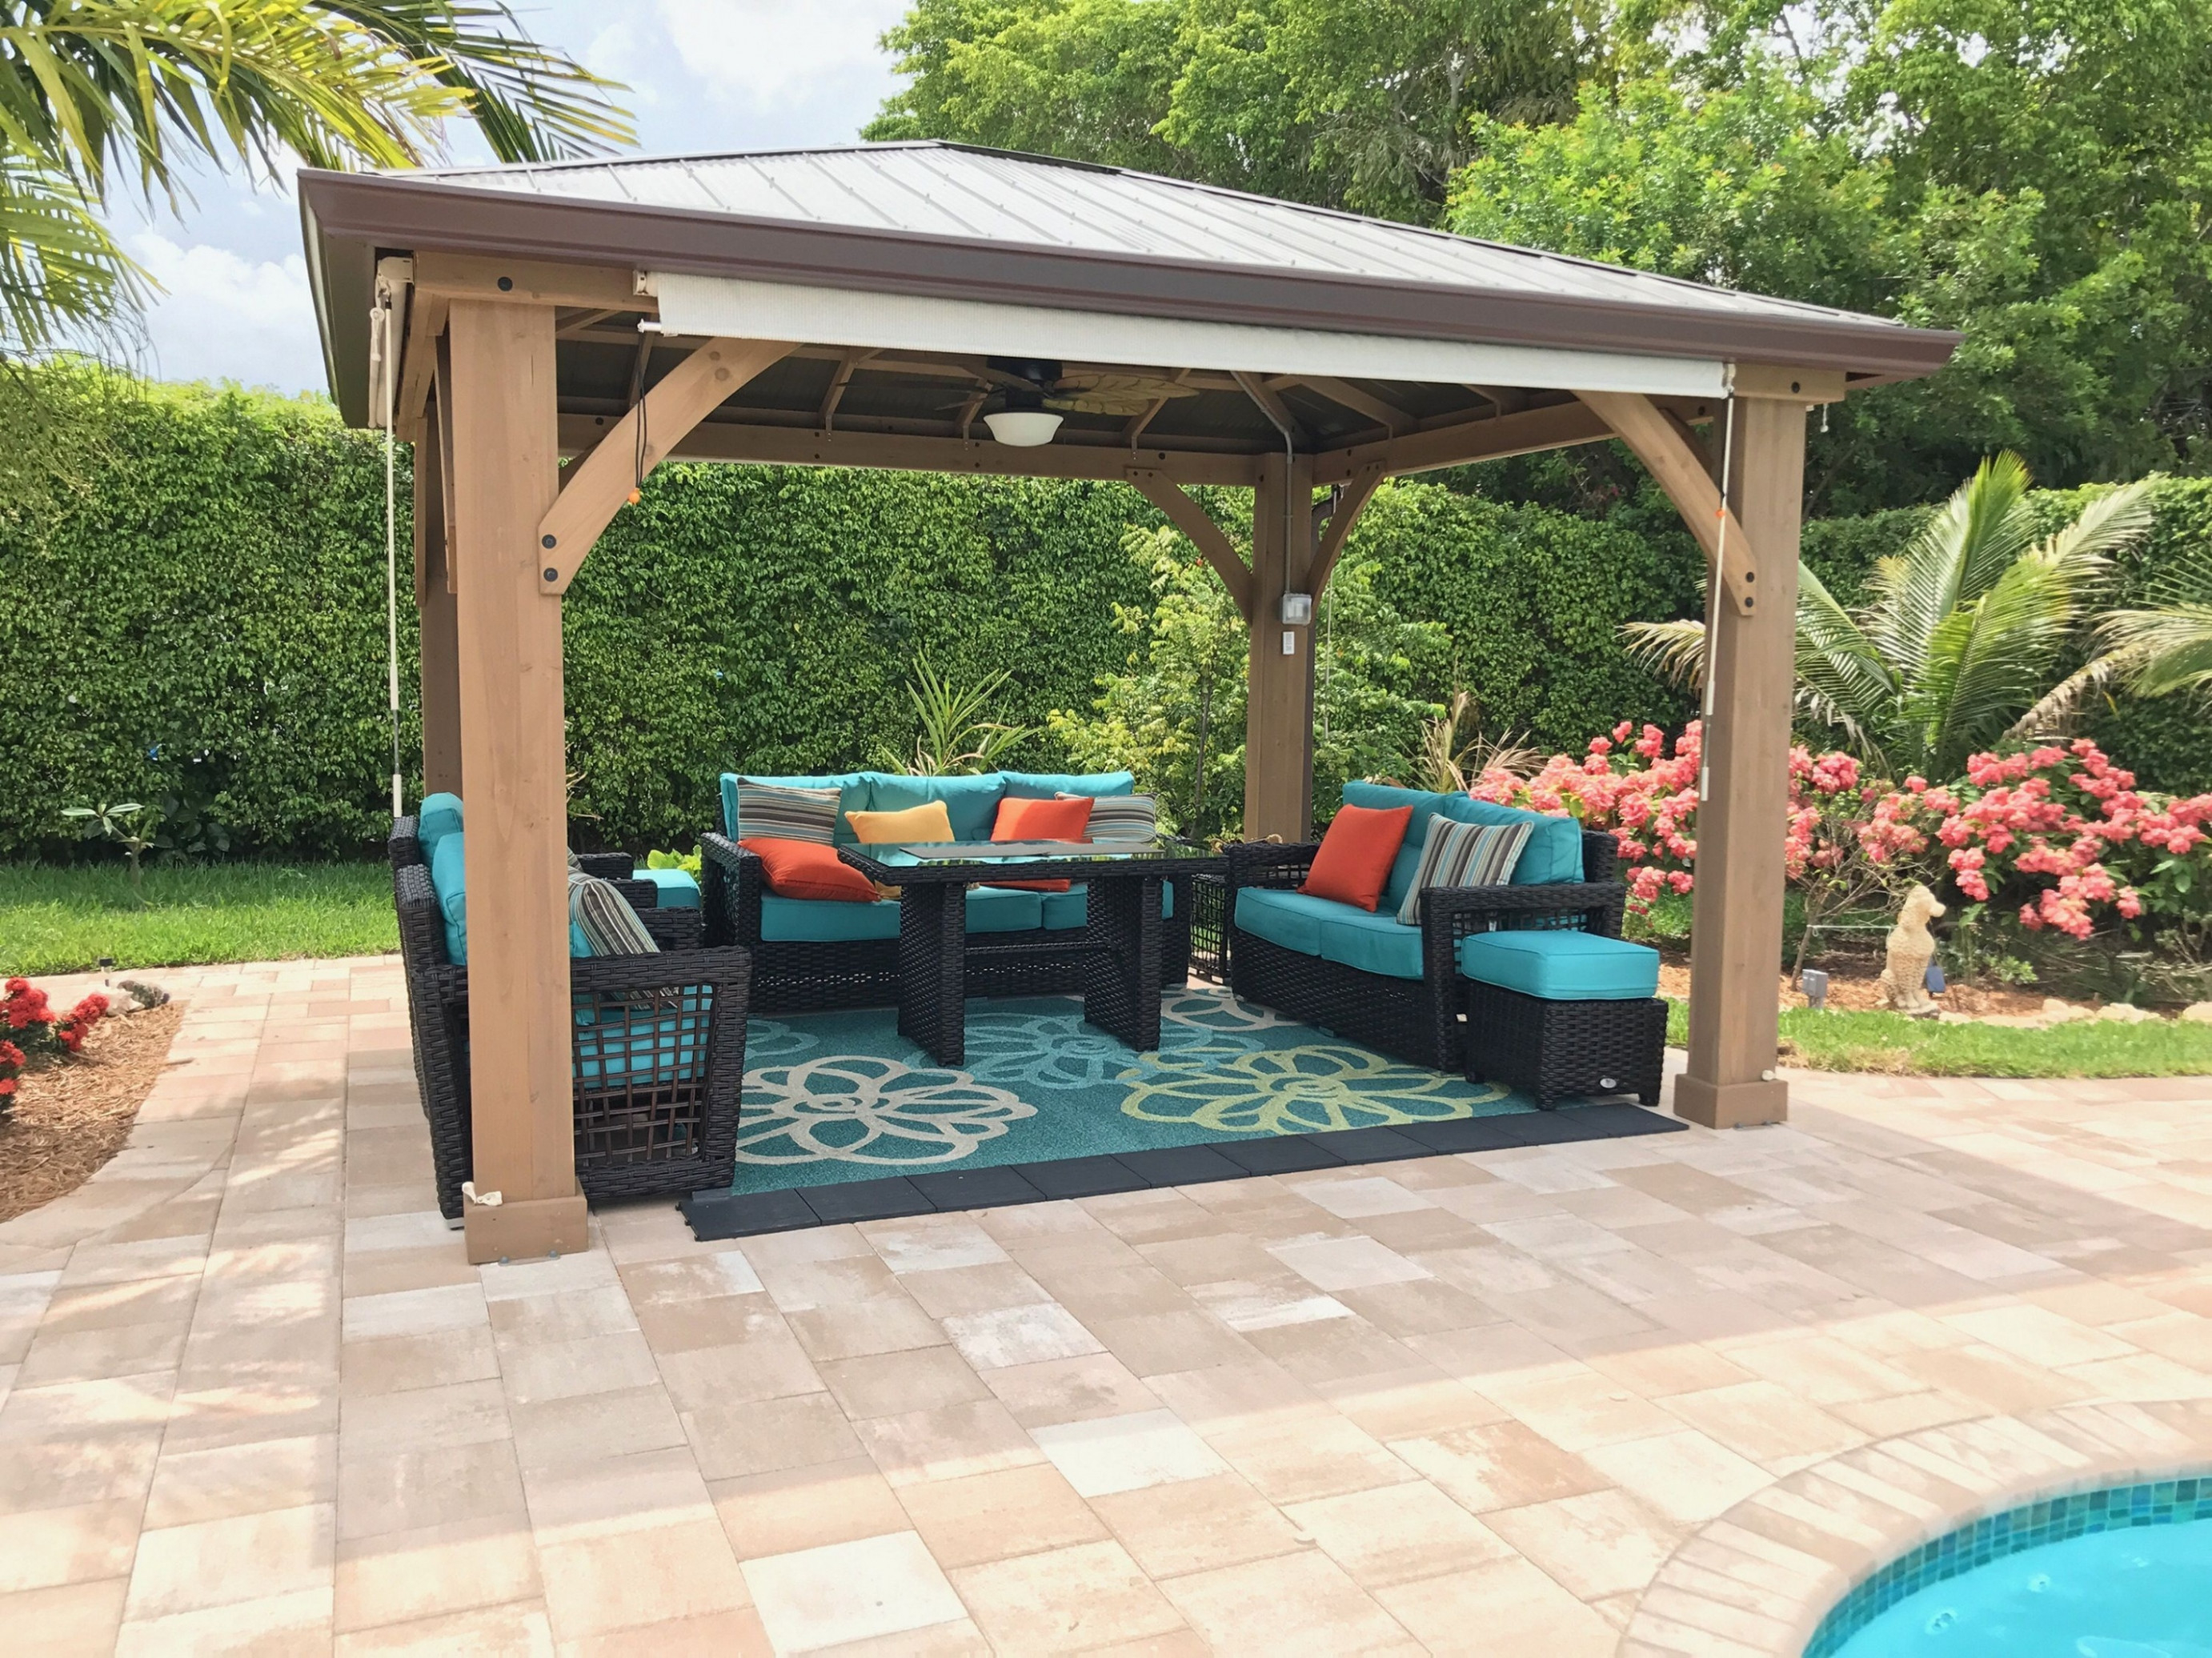 38 Frisch Garden Canopy Ideas Ese Valuation with 12 Smart Designs of How to Upgrade Backyard Canopy Ideas